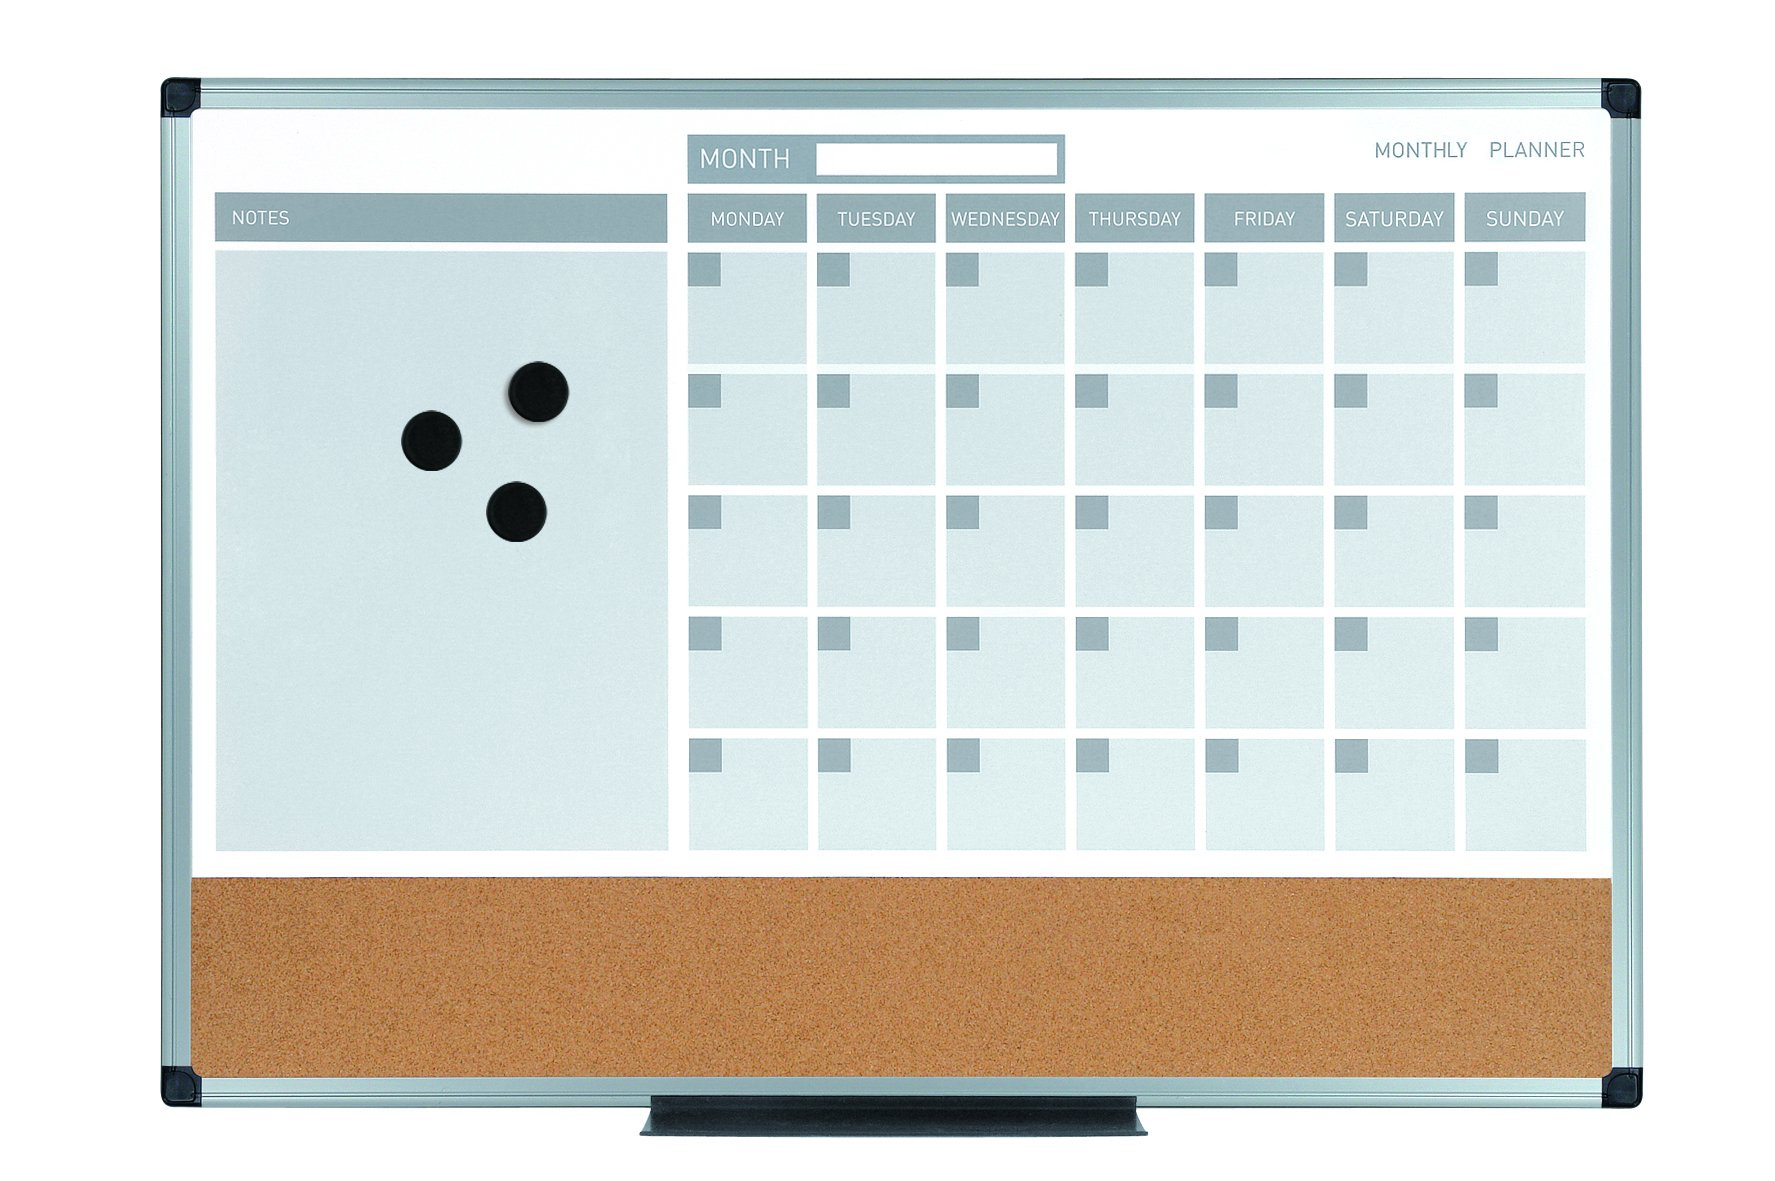 MasterVision MB0707186P Planning Board 3-in-1 Calendar Dry Erase, 24'' x 36'' with Aluminum Frame